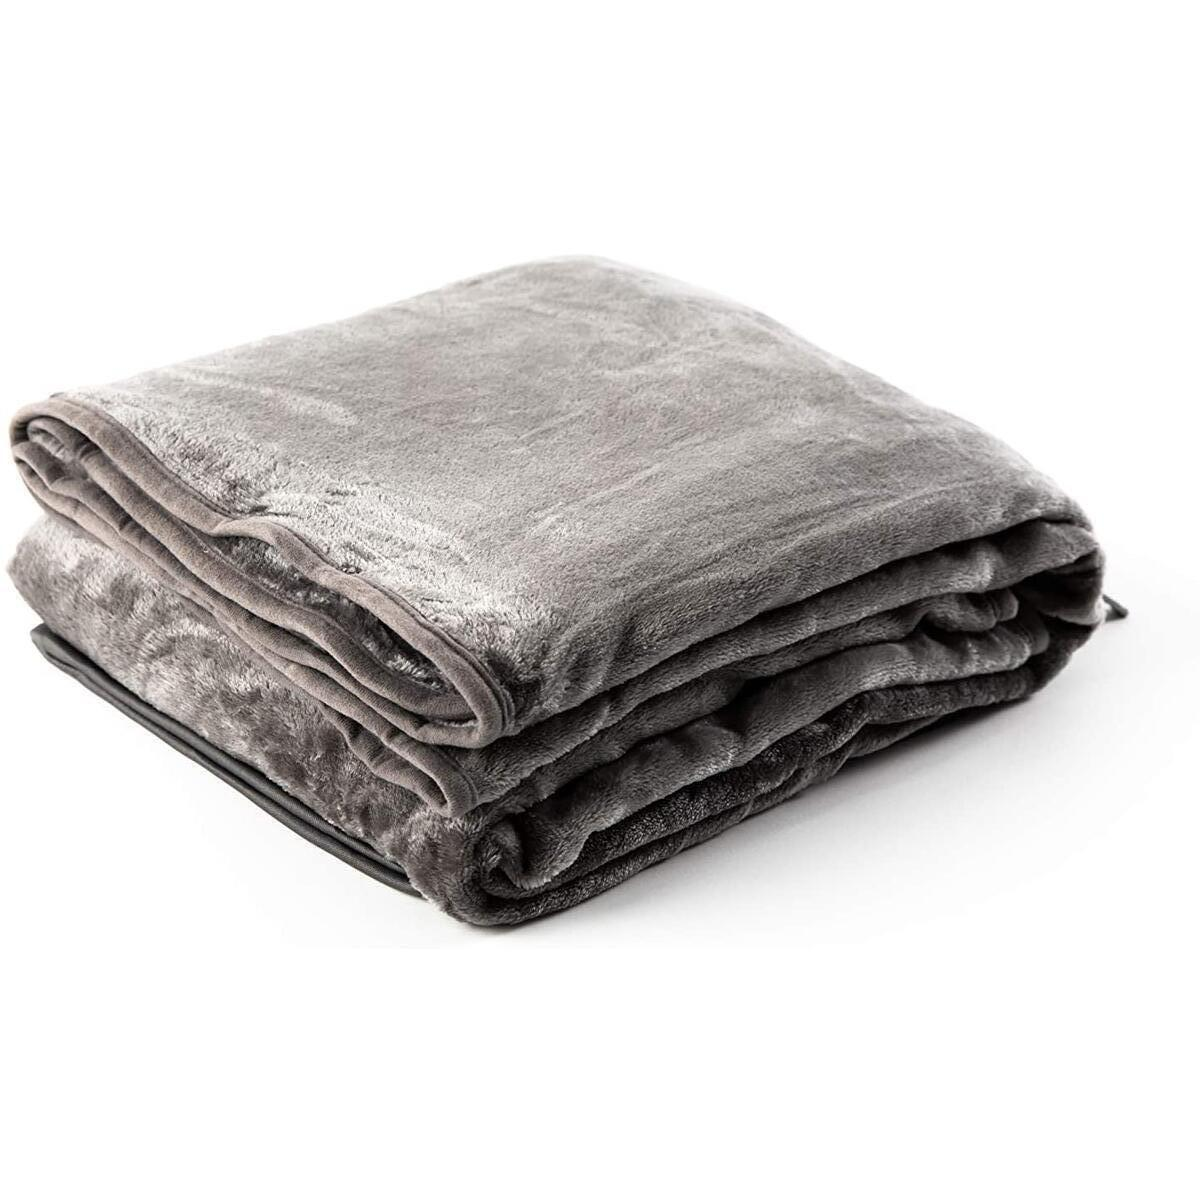 Zero Grid Extra Soft Throw Blanket – Warm, Plush Lightweight Grey Blanket Comfy for All Seasons w/Leg & Foot Pocket, Neck Snaps and Zipper Pouch